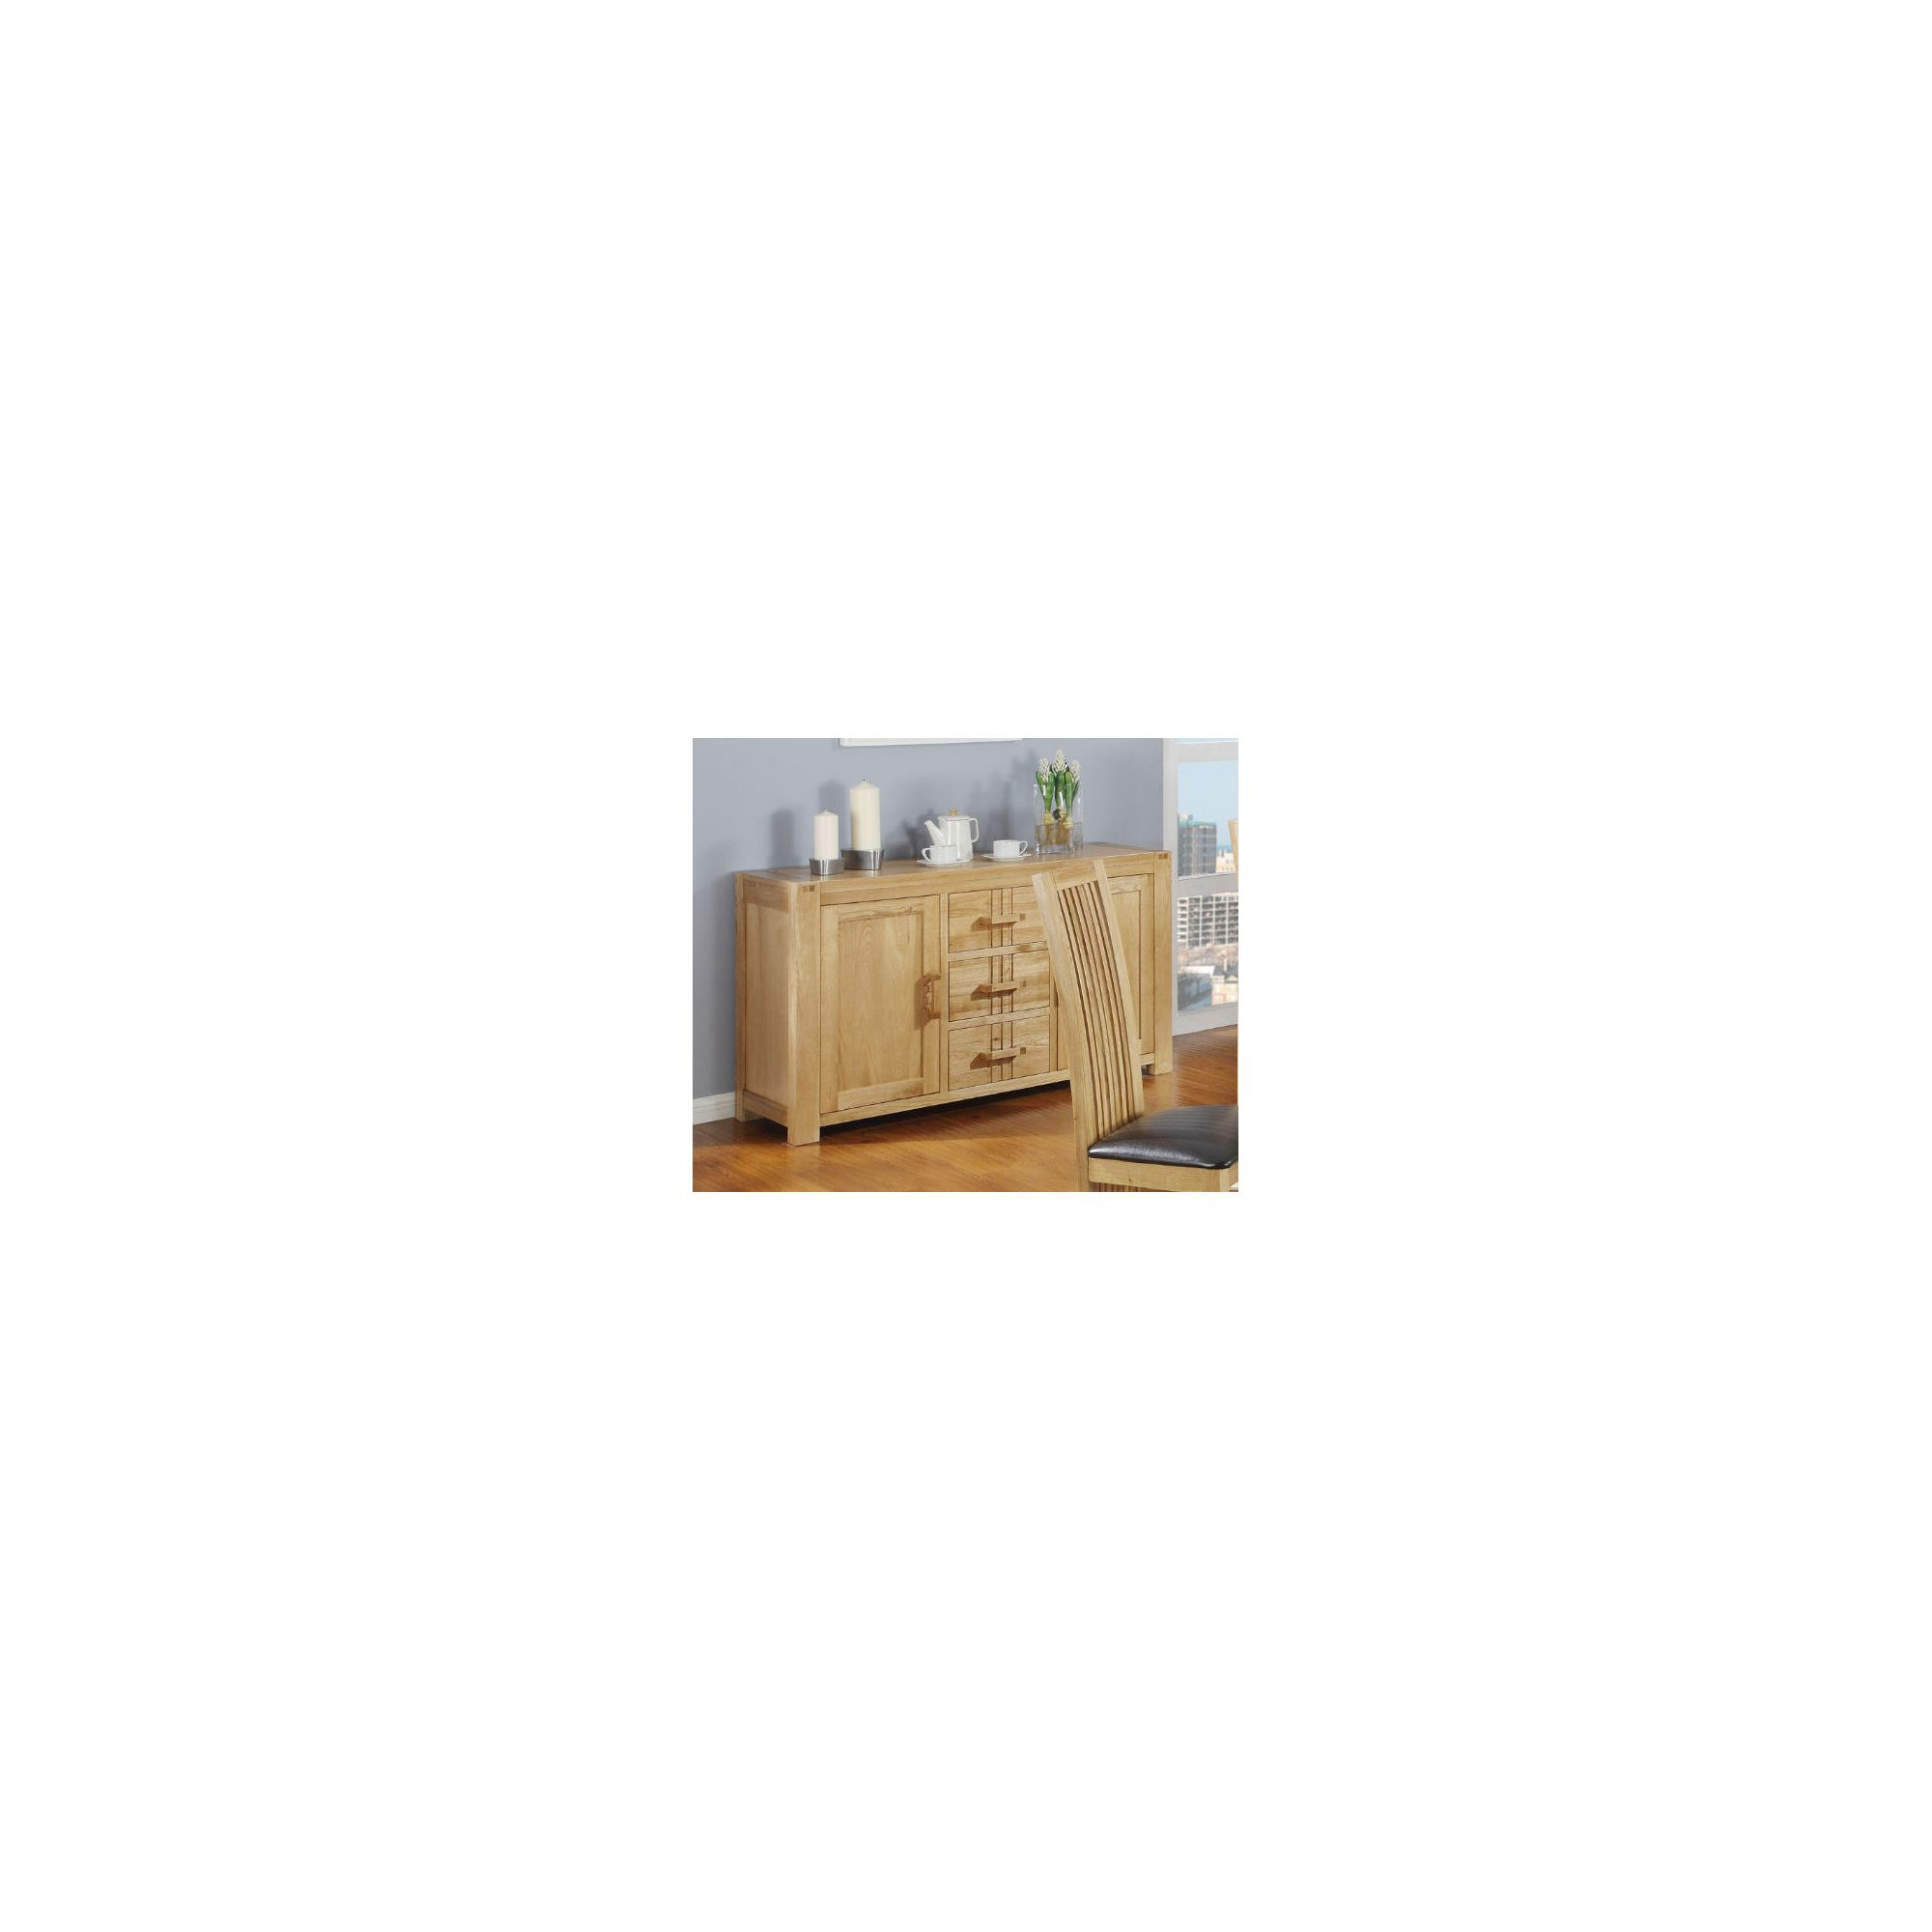 Heartlands Maryland Sideboard at Tesco Direct